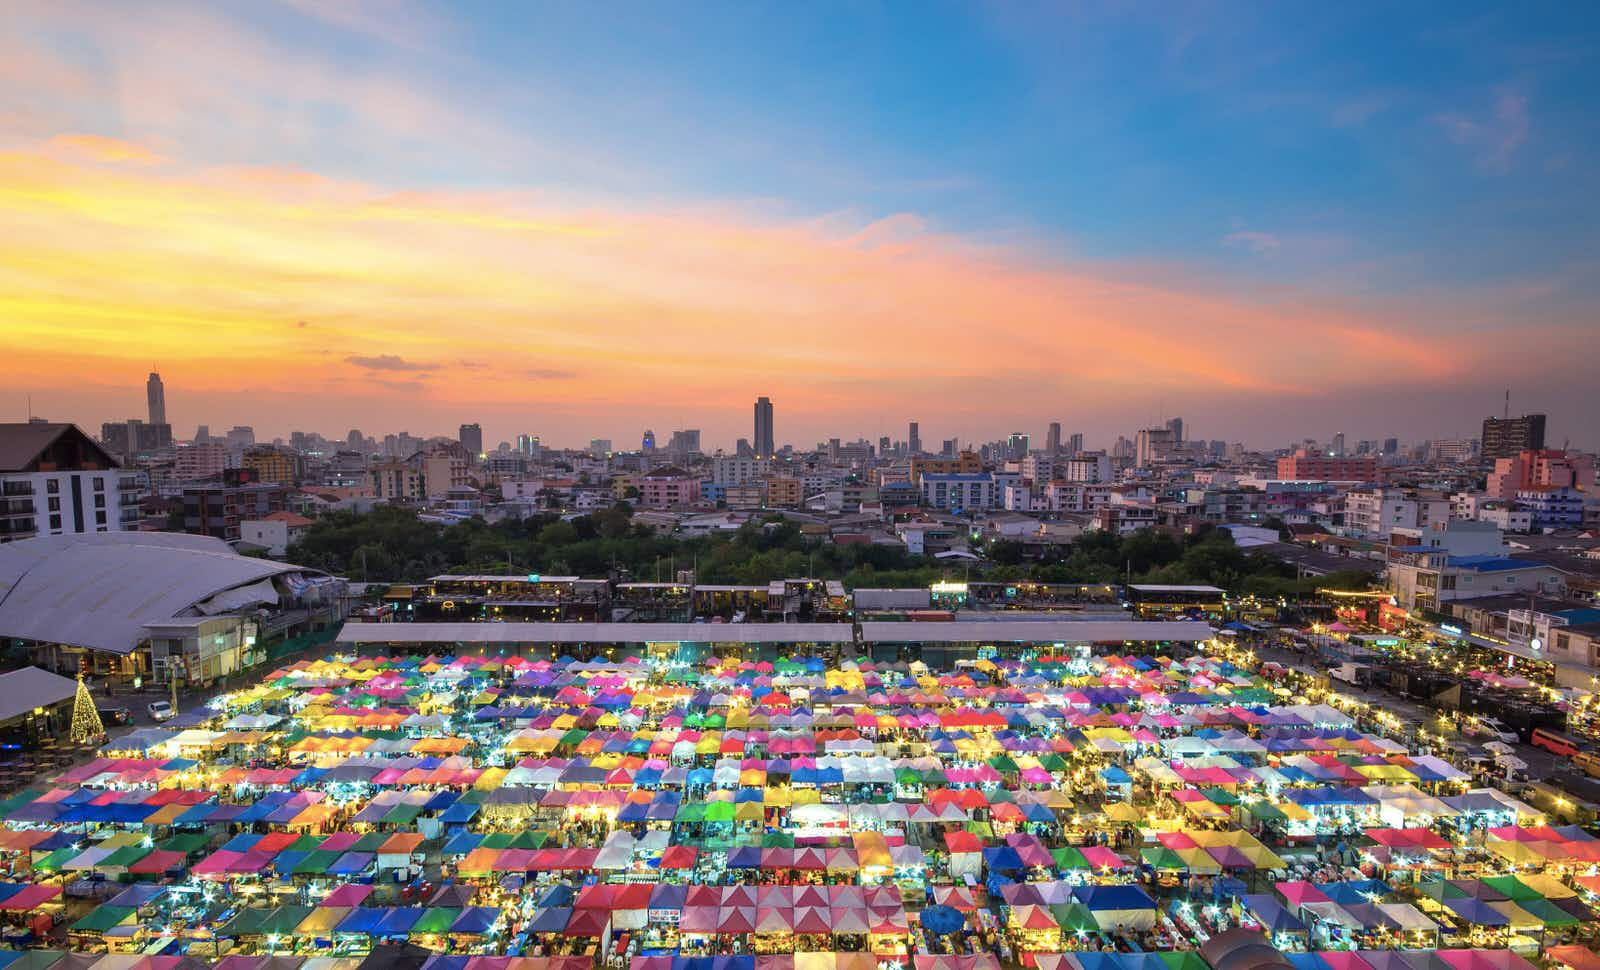 Bangkok in Thailand has come in first position again in Mastercard's Global Destination Cities Index .Image: Preecha Makjan/500px